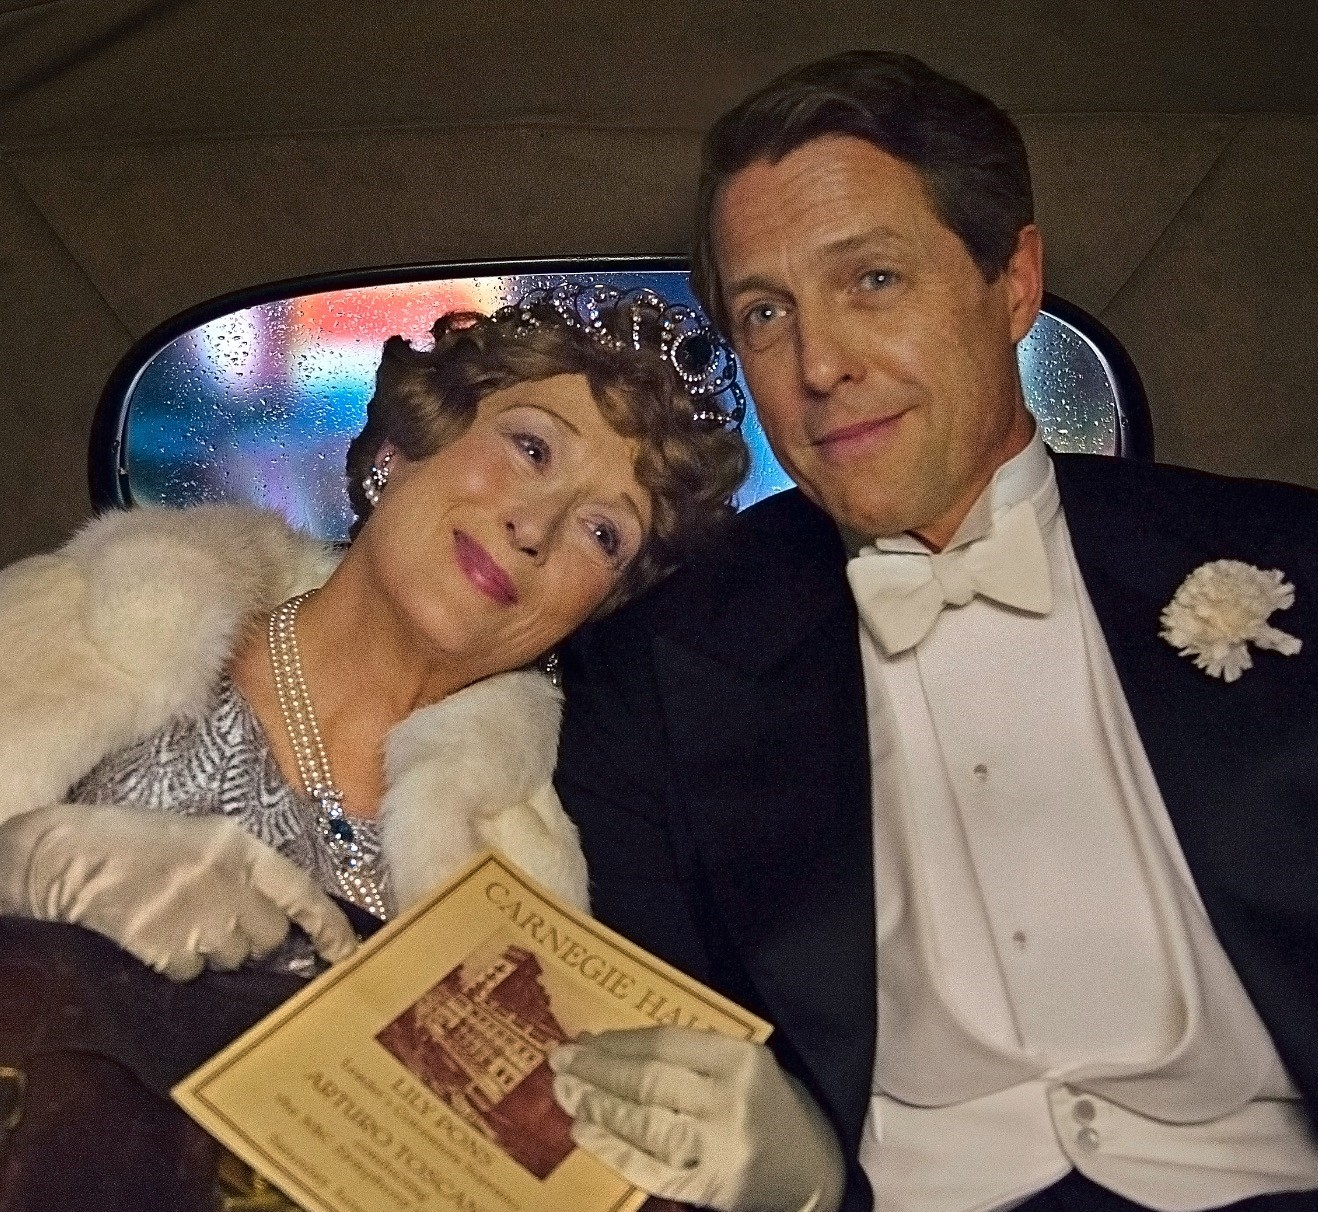 u201cFlorence Foster Jenkinsu201d focuses on the life of the opera singer who earned the title of the worst opera star of all time yet left her mark on American high society.